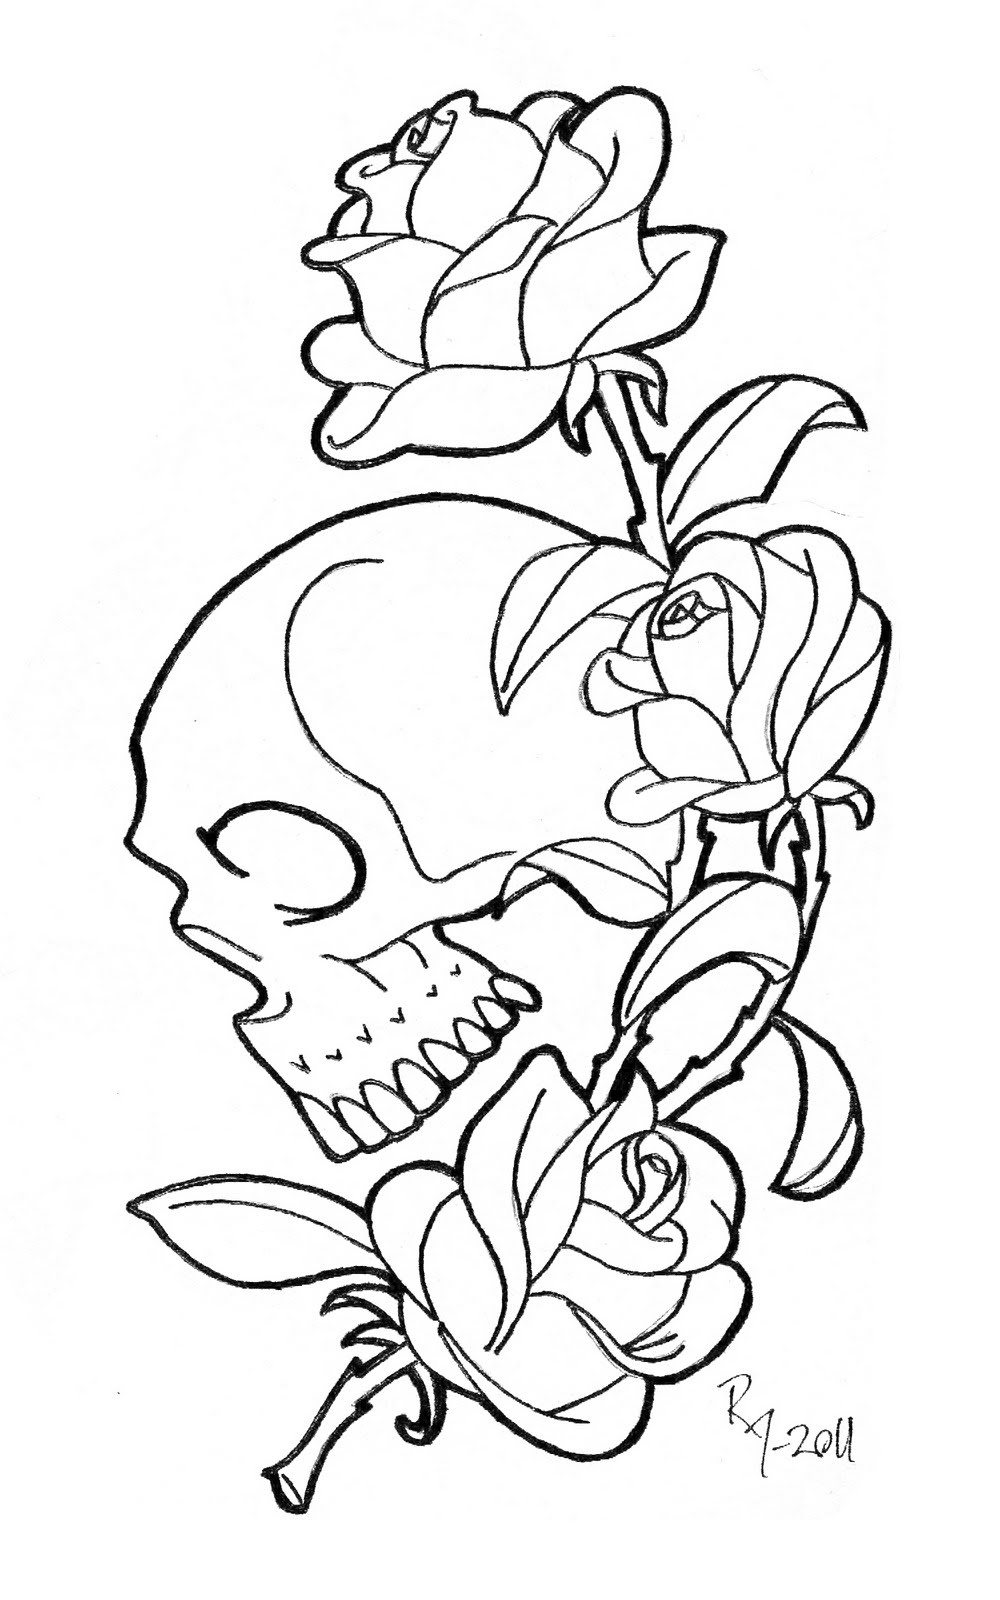 Free Rose Coloring Pages Skull With Roses Coloring Pages At Getdrawings Free For